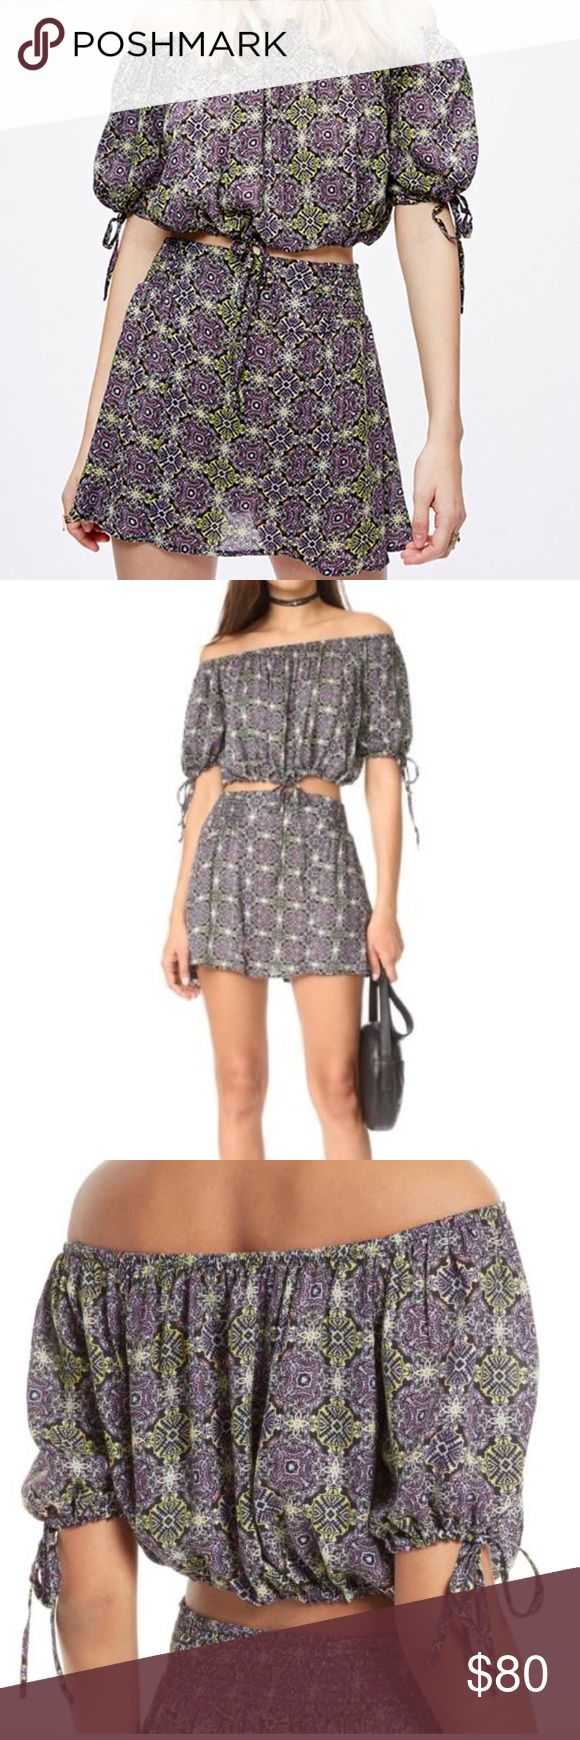 Free People Electric Love Two Piece Set This soft printed set features an off-the-shoulder crop top with an elastic band at the waist and bust. Relaxed sleeves with tie closures. Flowy skirt has a smocked waistband.  100% Rayon Machine Wash Cold Free People Dresses Mini